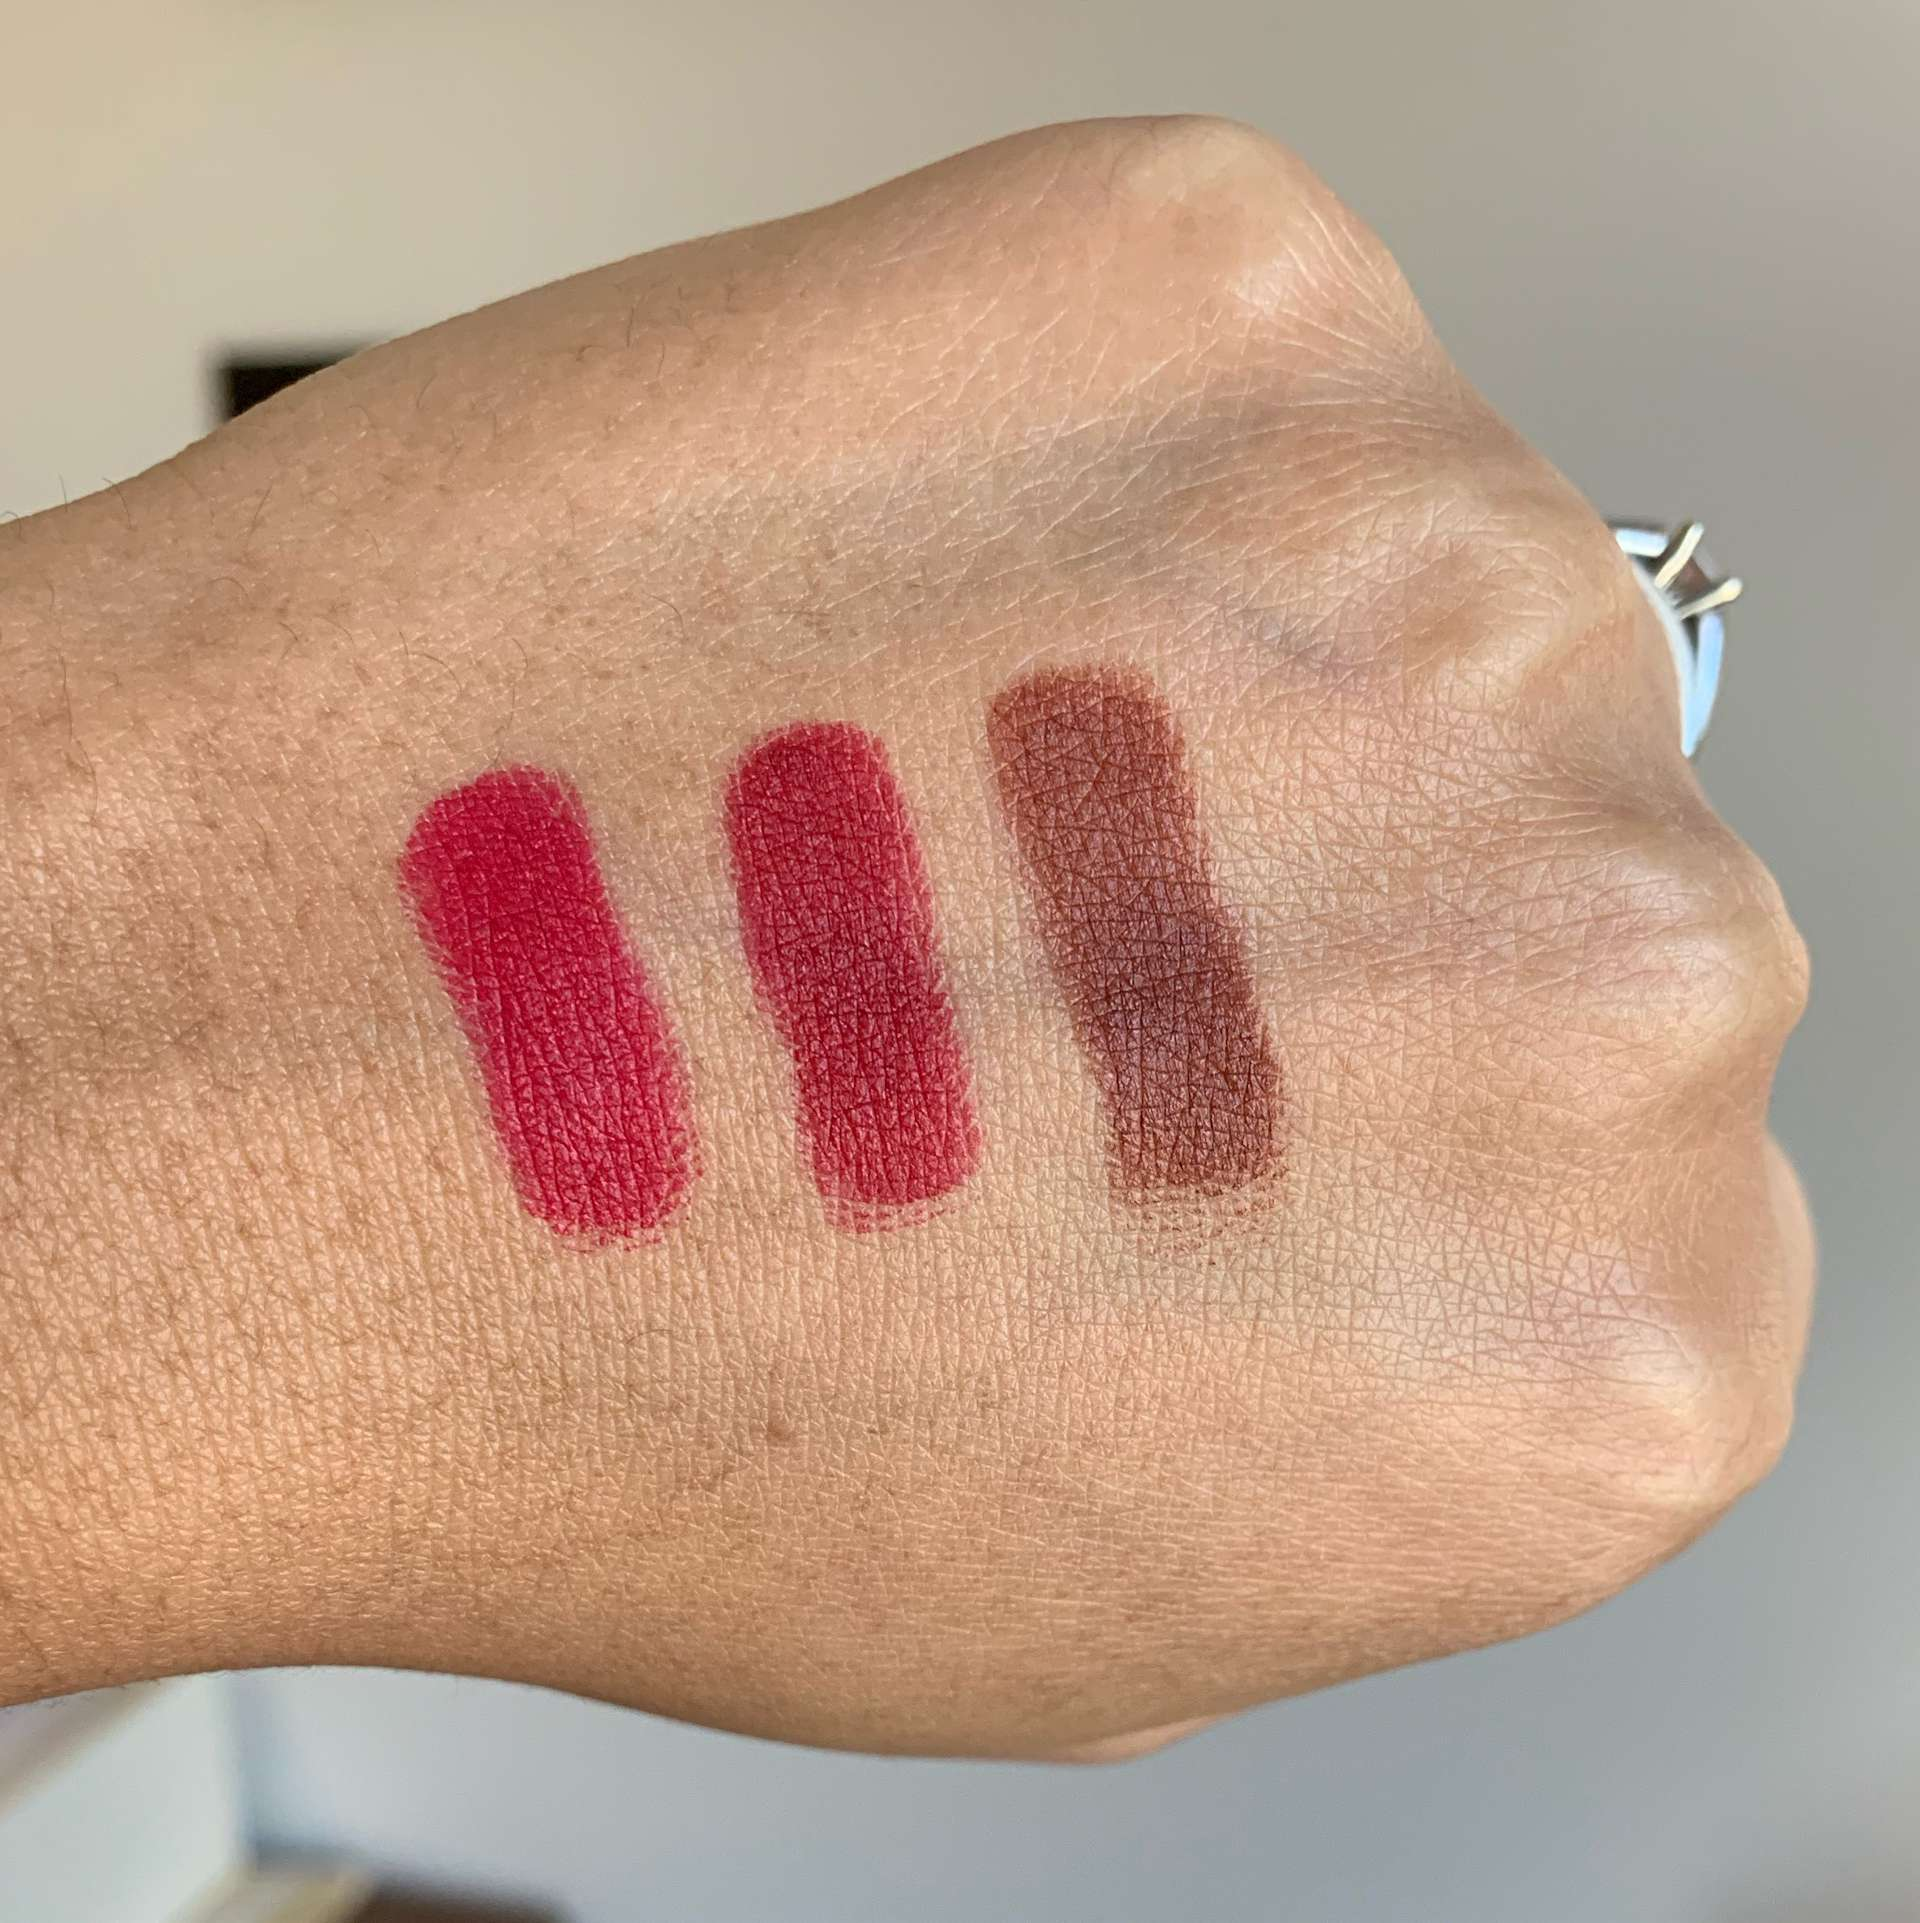 Chanel Rouge Allure Velvet Extreme Lipstick Swatches (114 epitome, 116 extreme, 122 chestnut)